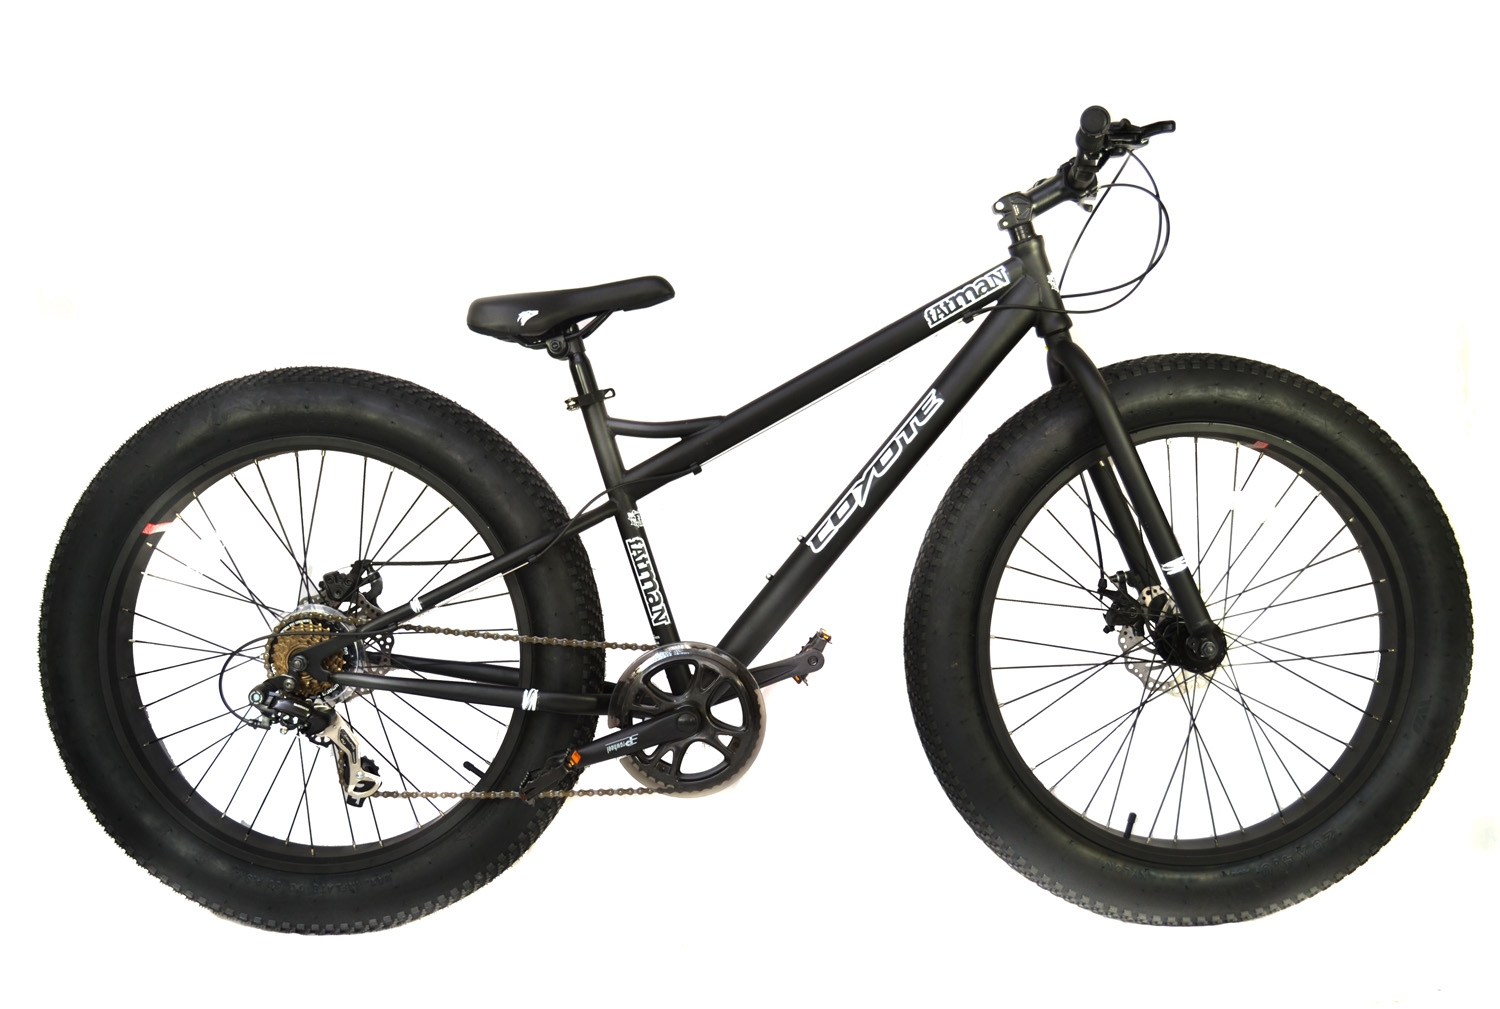 coyote fatman fat bike 26 x 4 with disc brakes black rrp. Black Bedroom Furniture Sets. Home Design Ideas